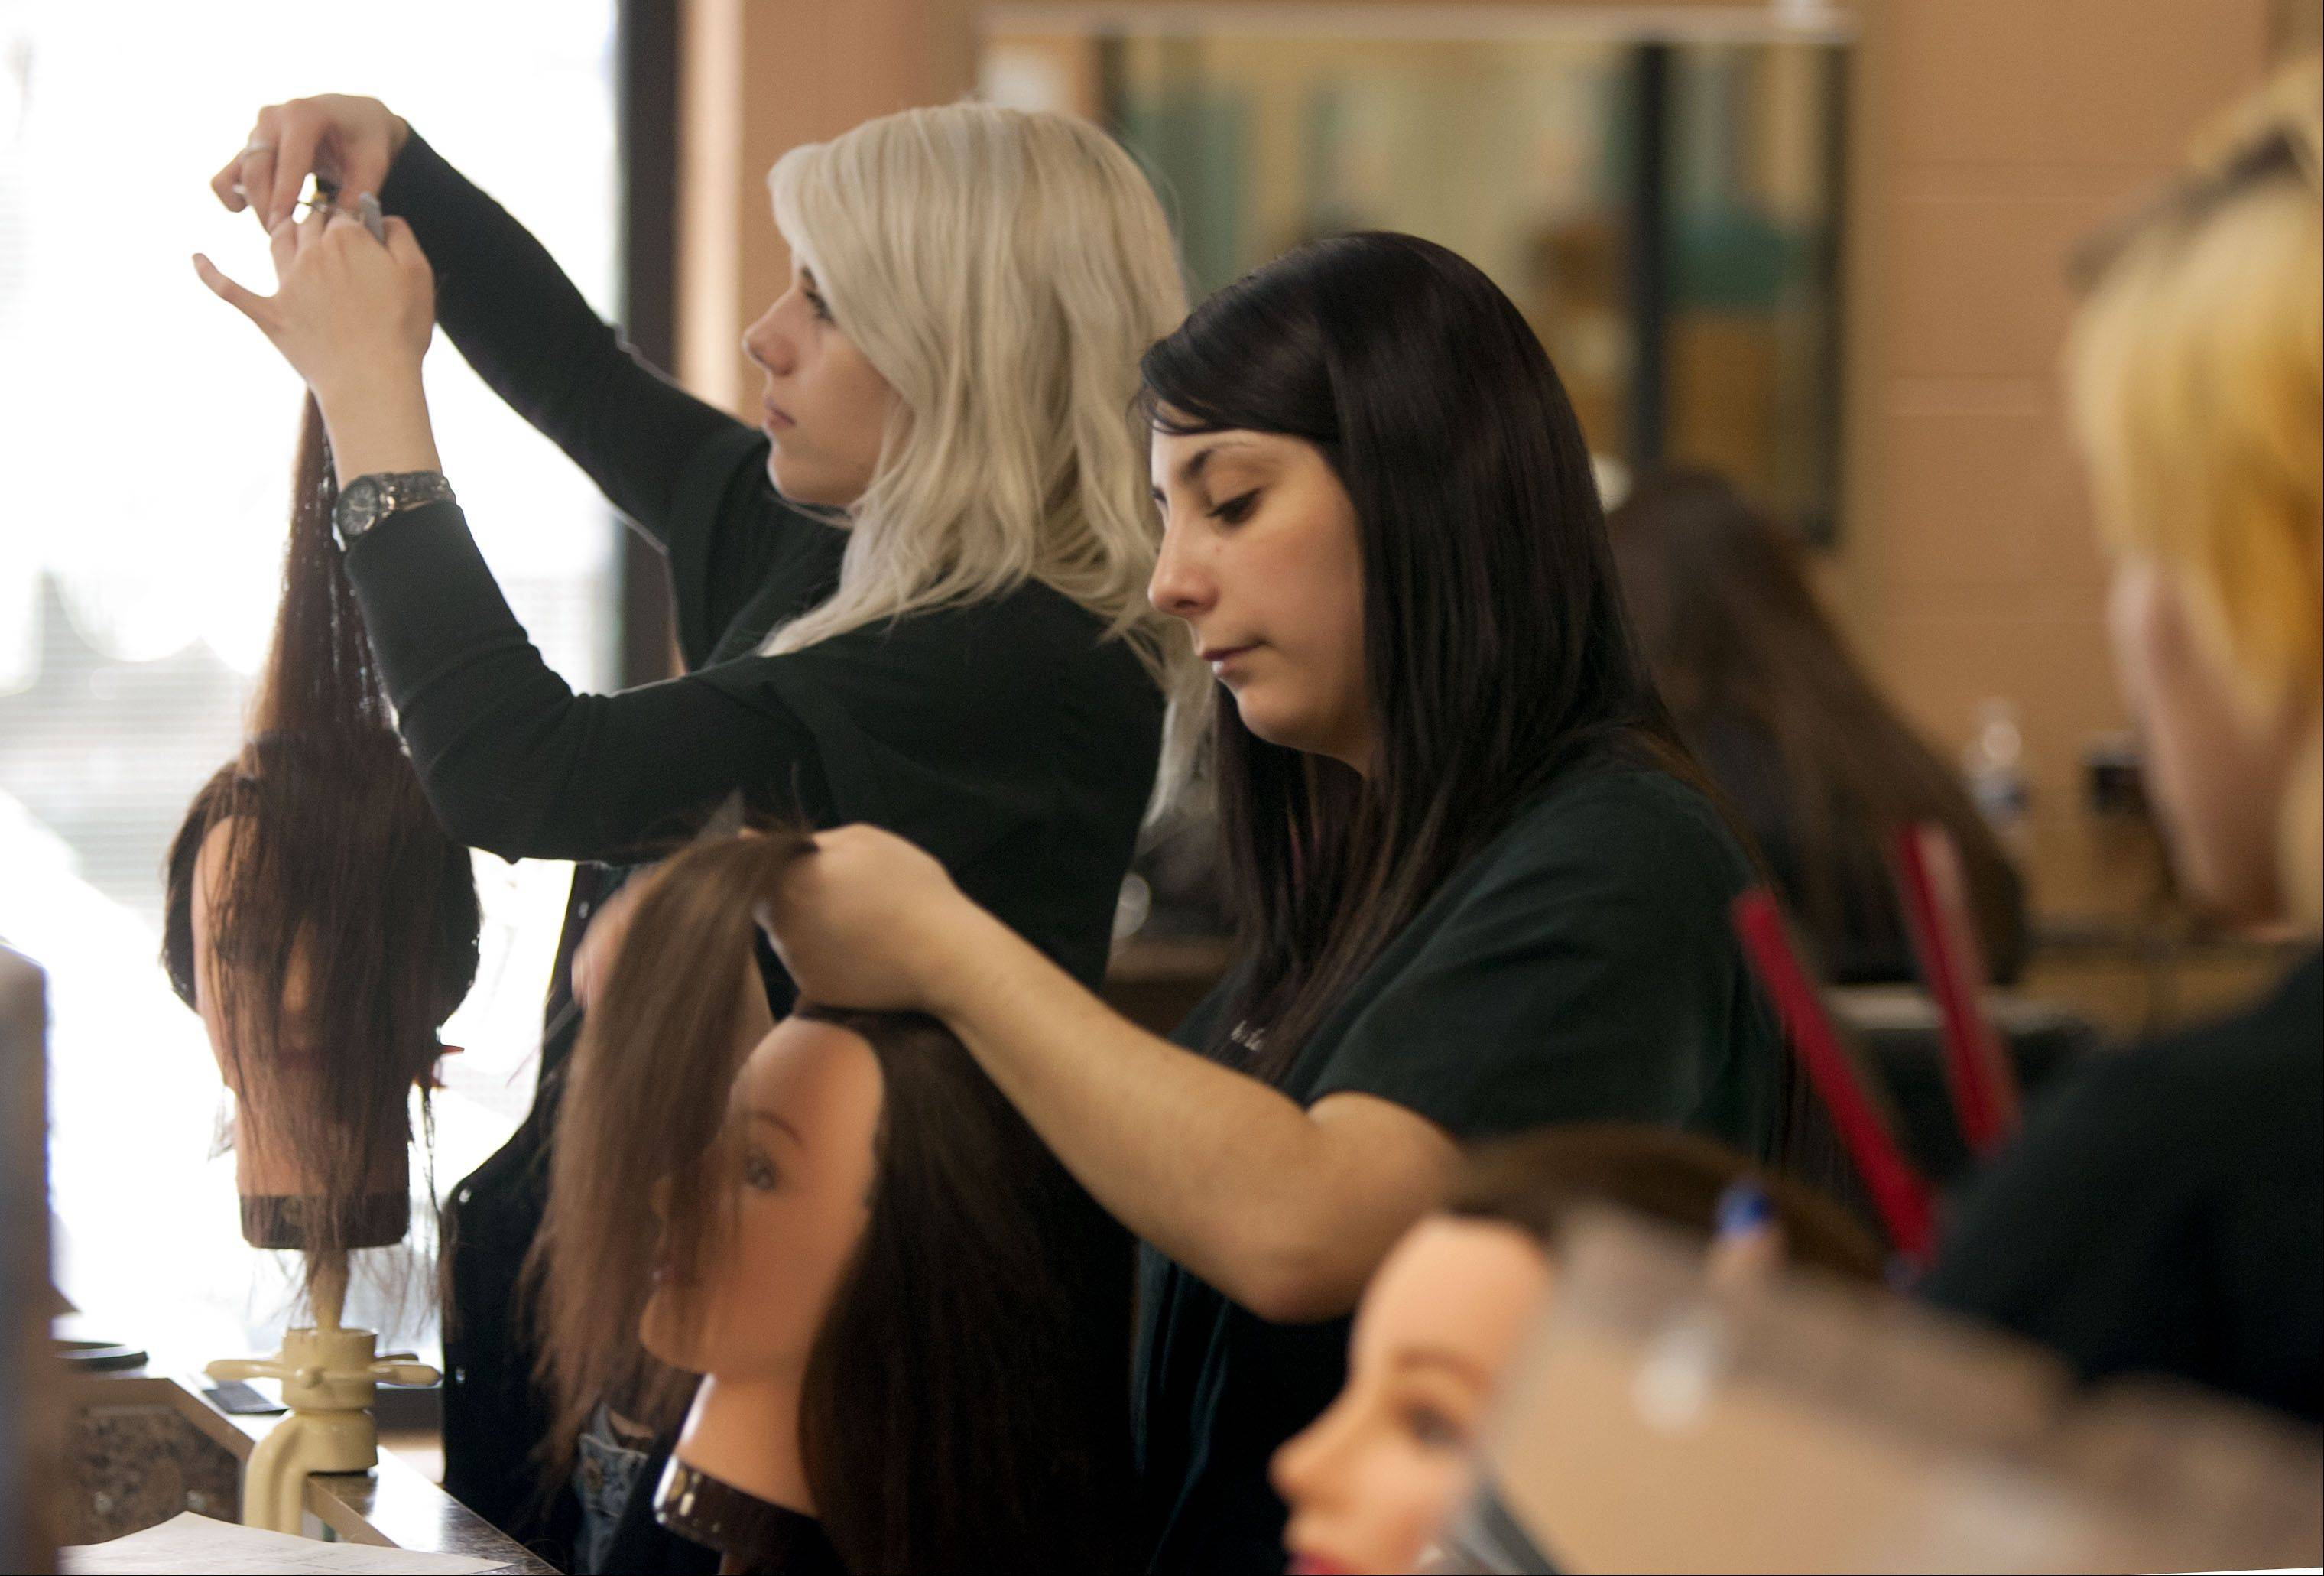 Jenna Strohbusch of Glenbard South High School, left, and Marianna Oddo of Glenbard North High School, work on hair during a cosmetology class at Technology Center of DuPage.